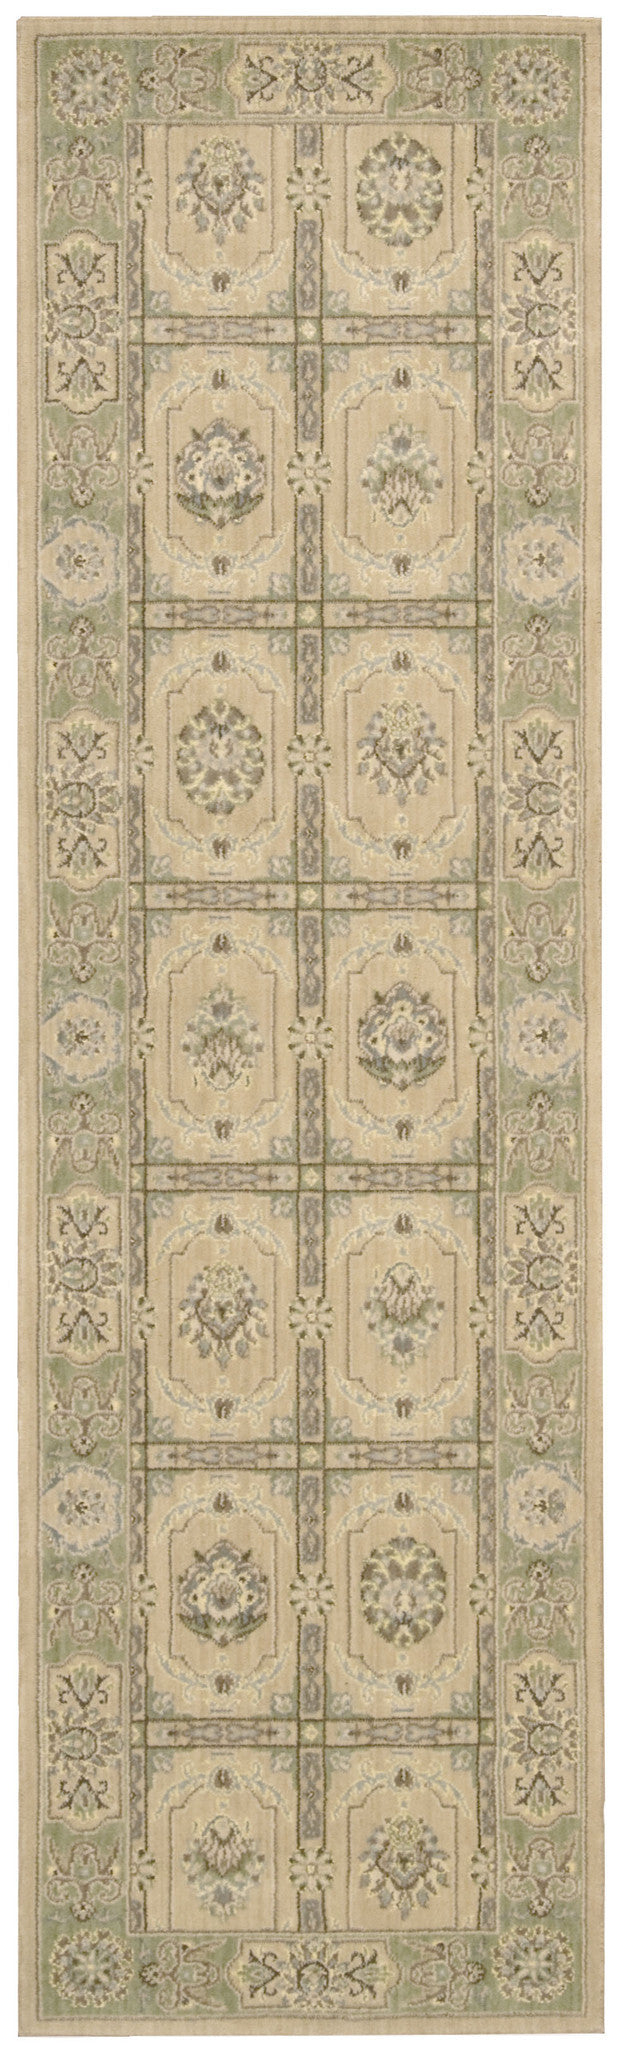 Nourison Persian Empire Sand Area Rug PE23 SAN